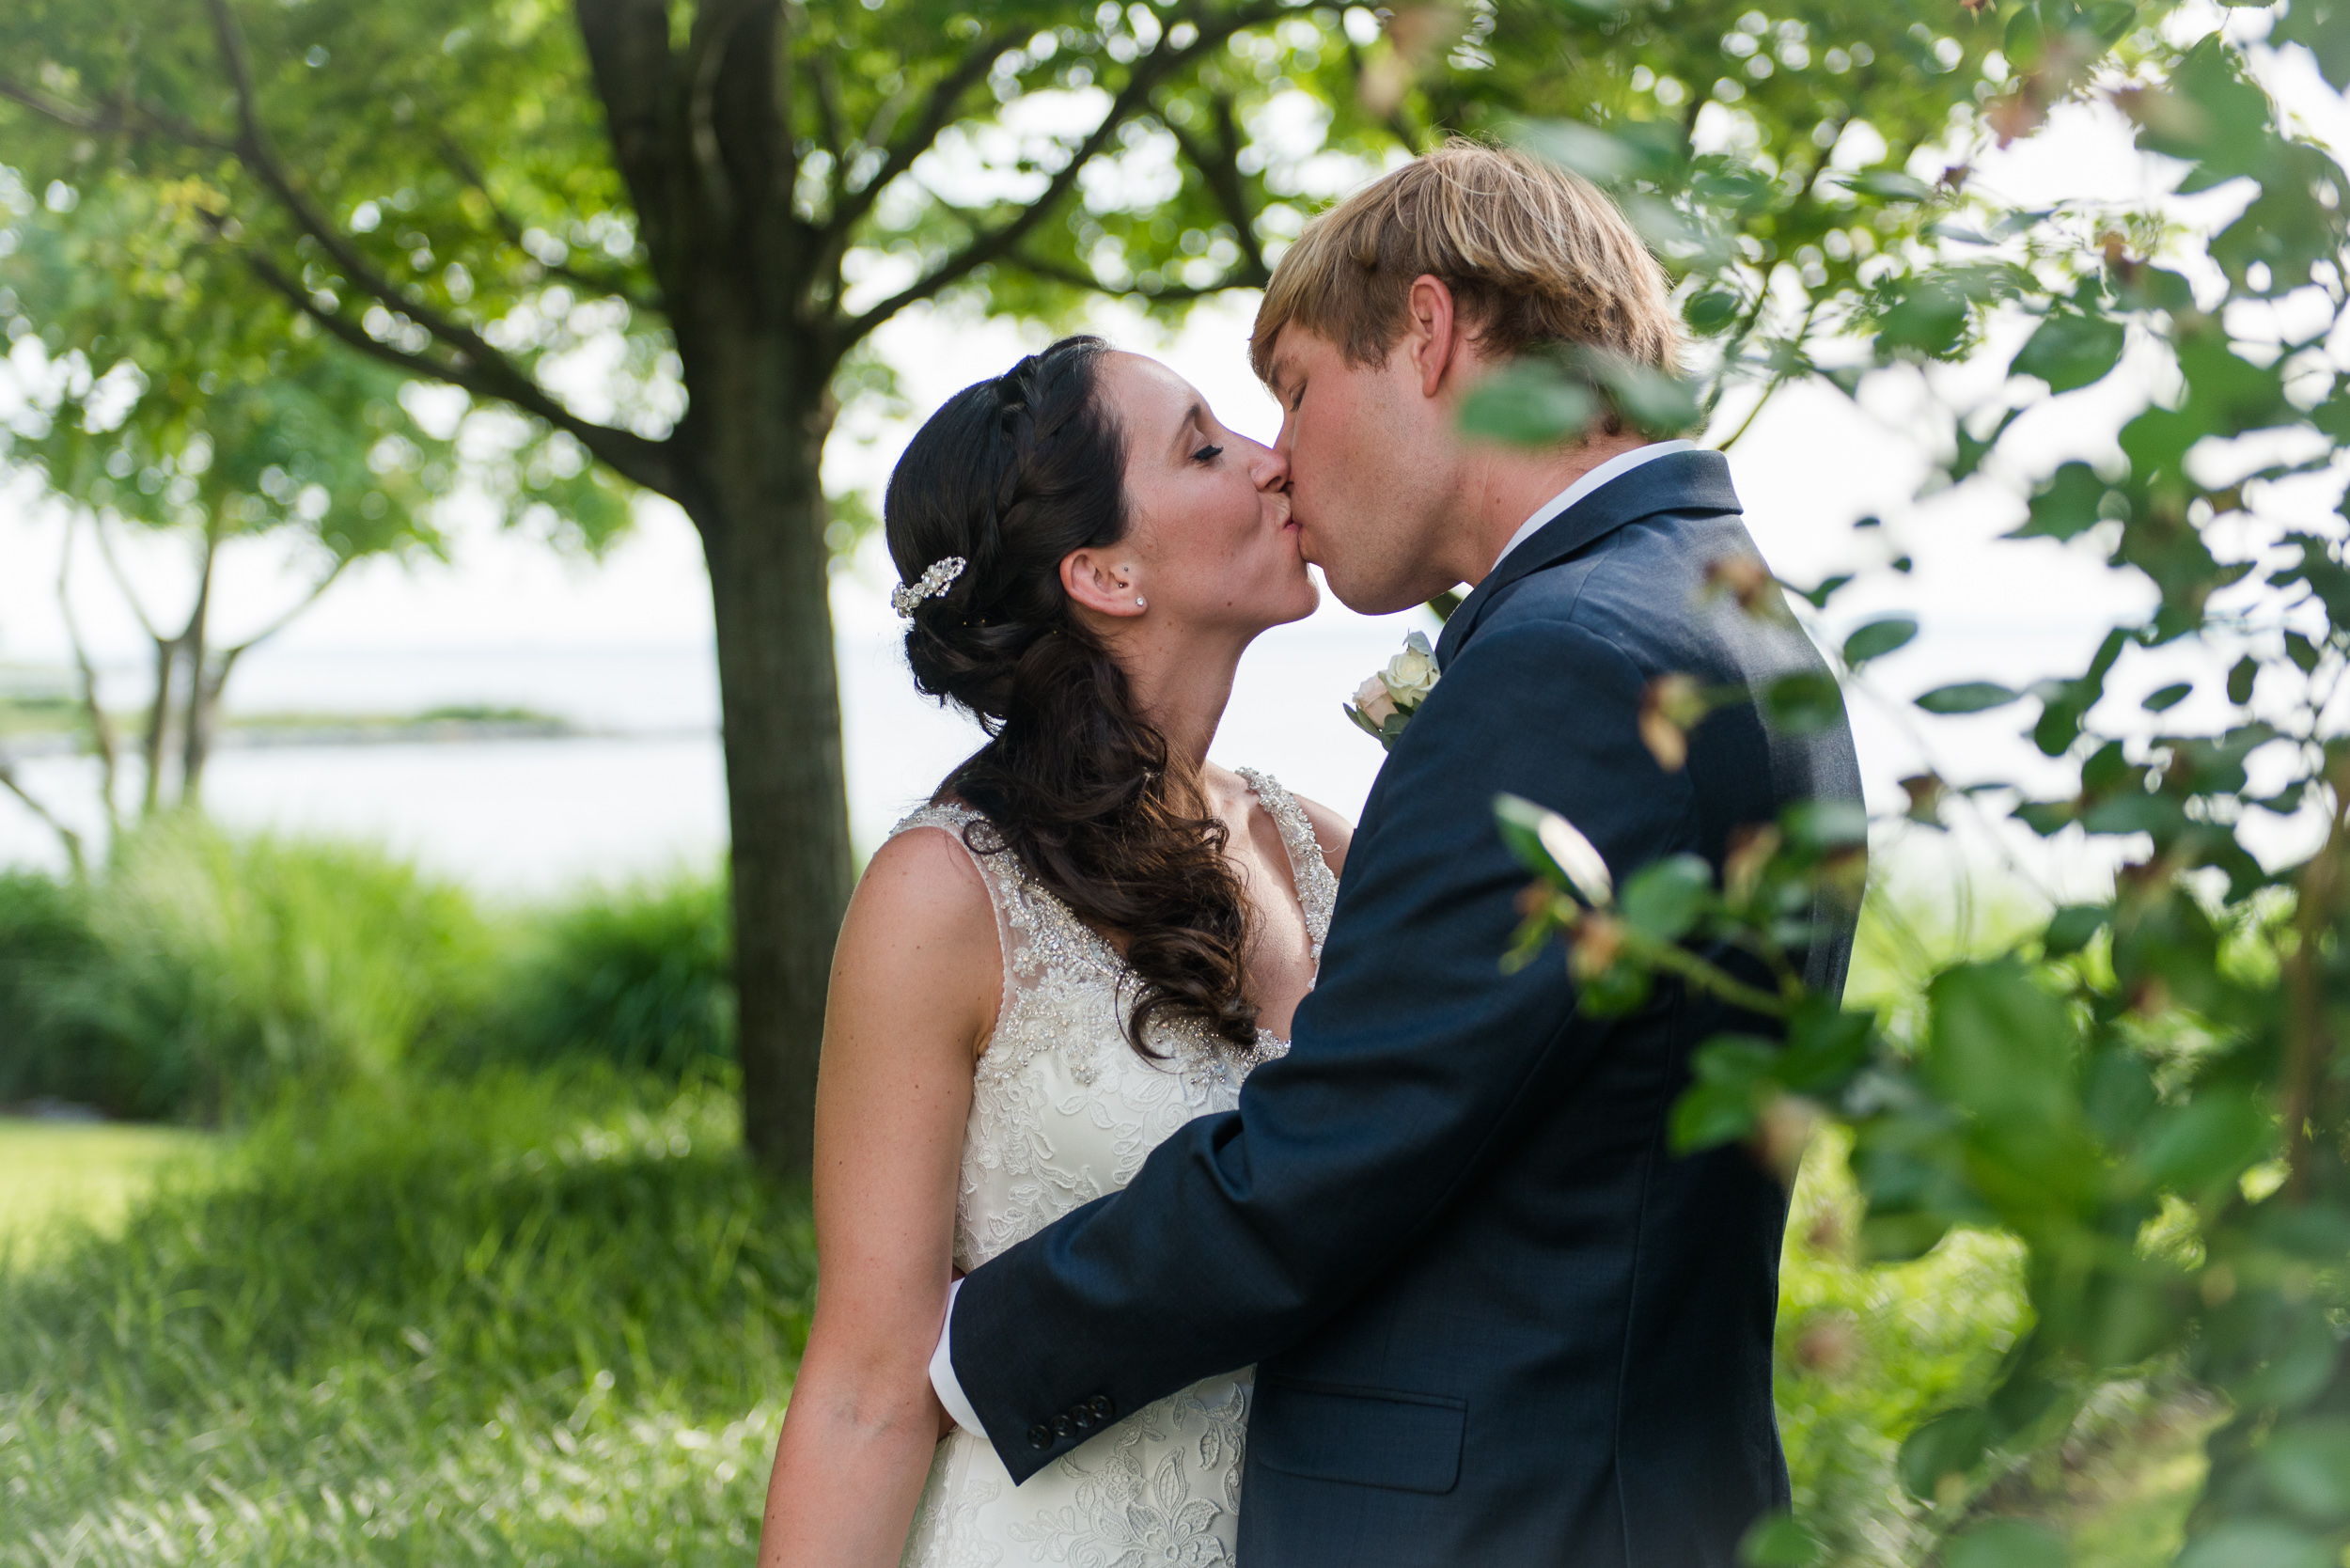 The bride and groom kiss in the woods by the chesapeake bay at the chesapeake bay beach club in stevensville, md